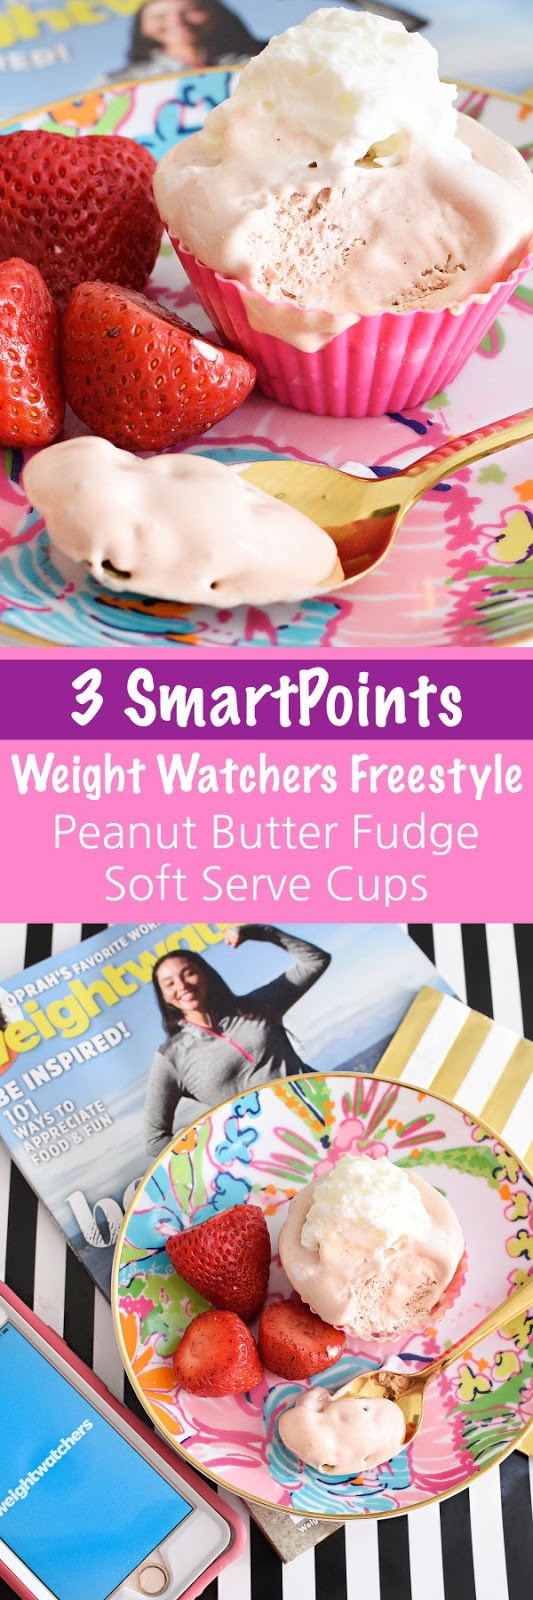 Only 3 SmartPoints: Weight Watchers Freestyle Peanut Butter Fudge Soft Serve Cups- perfect single serving treat.